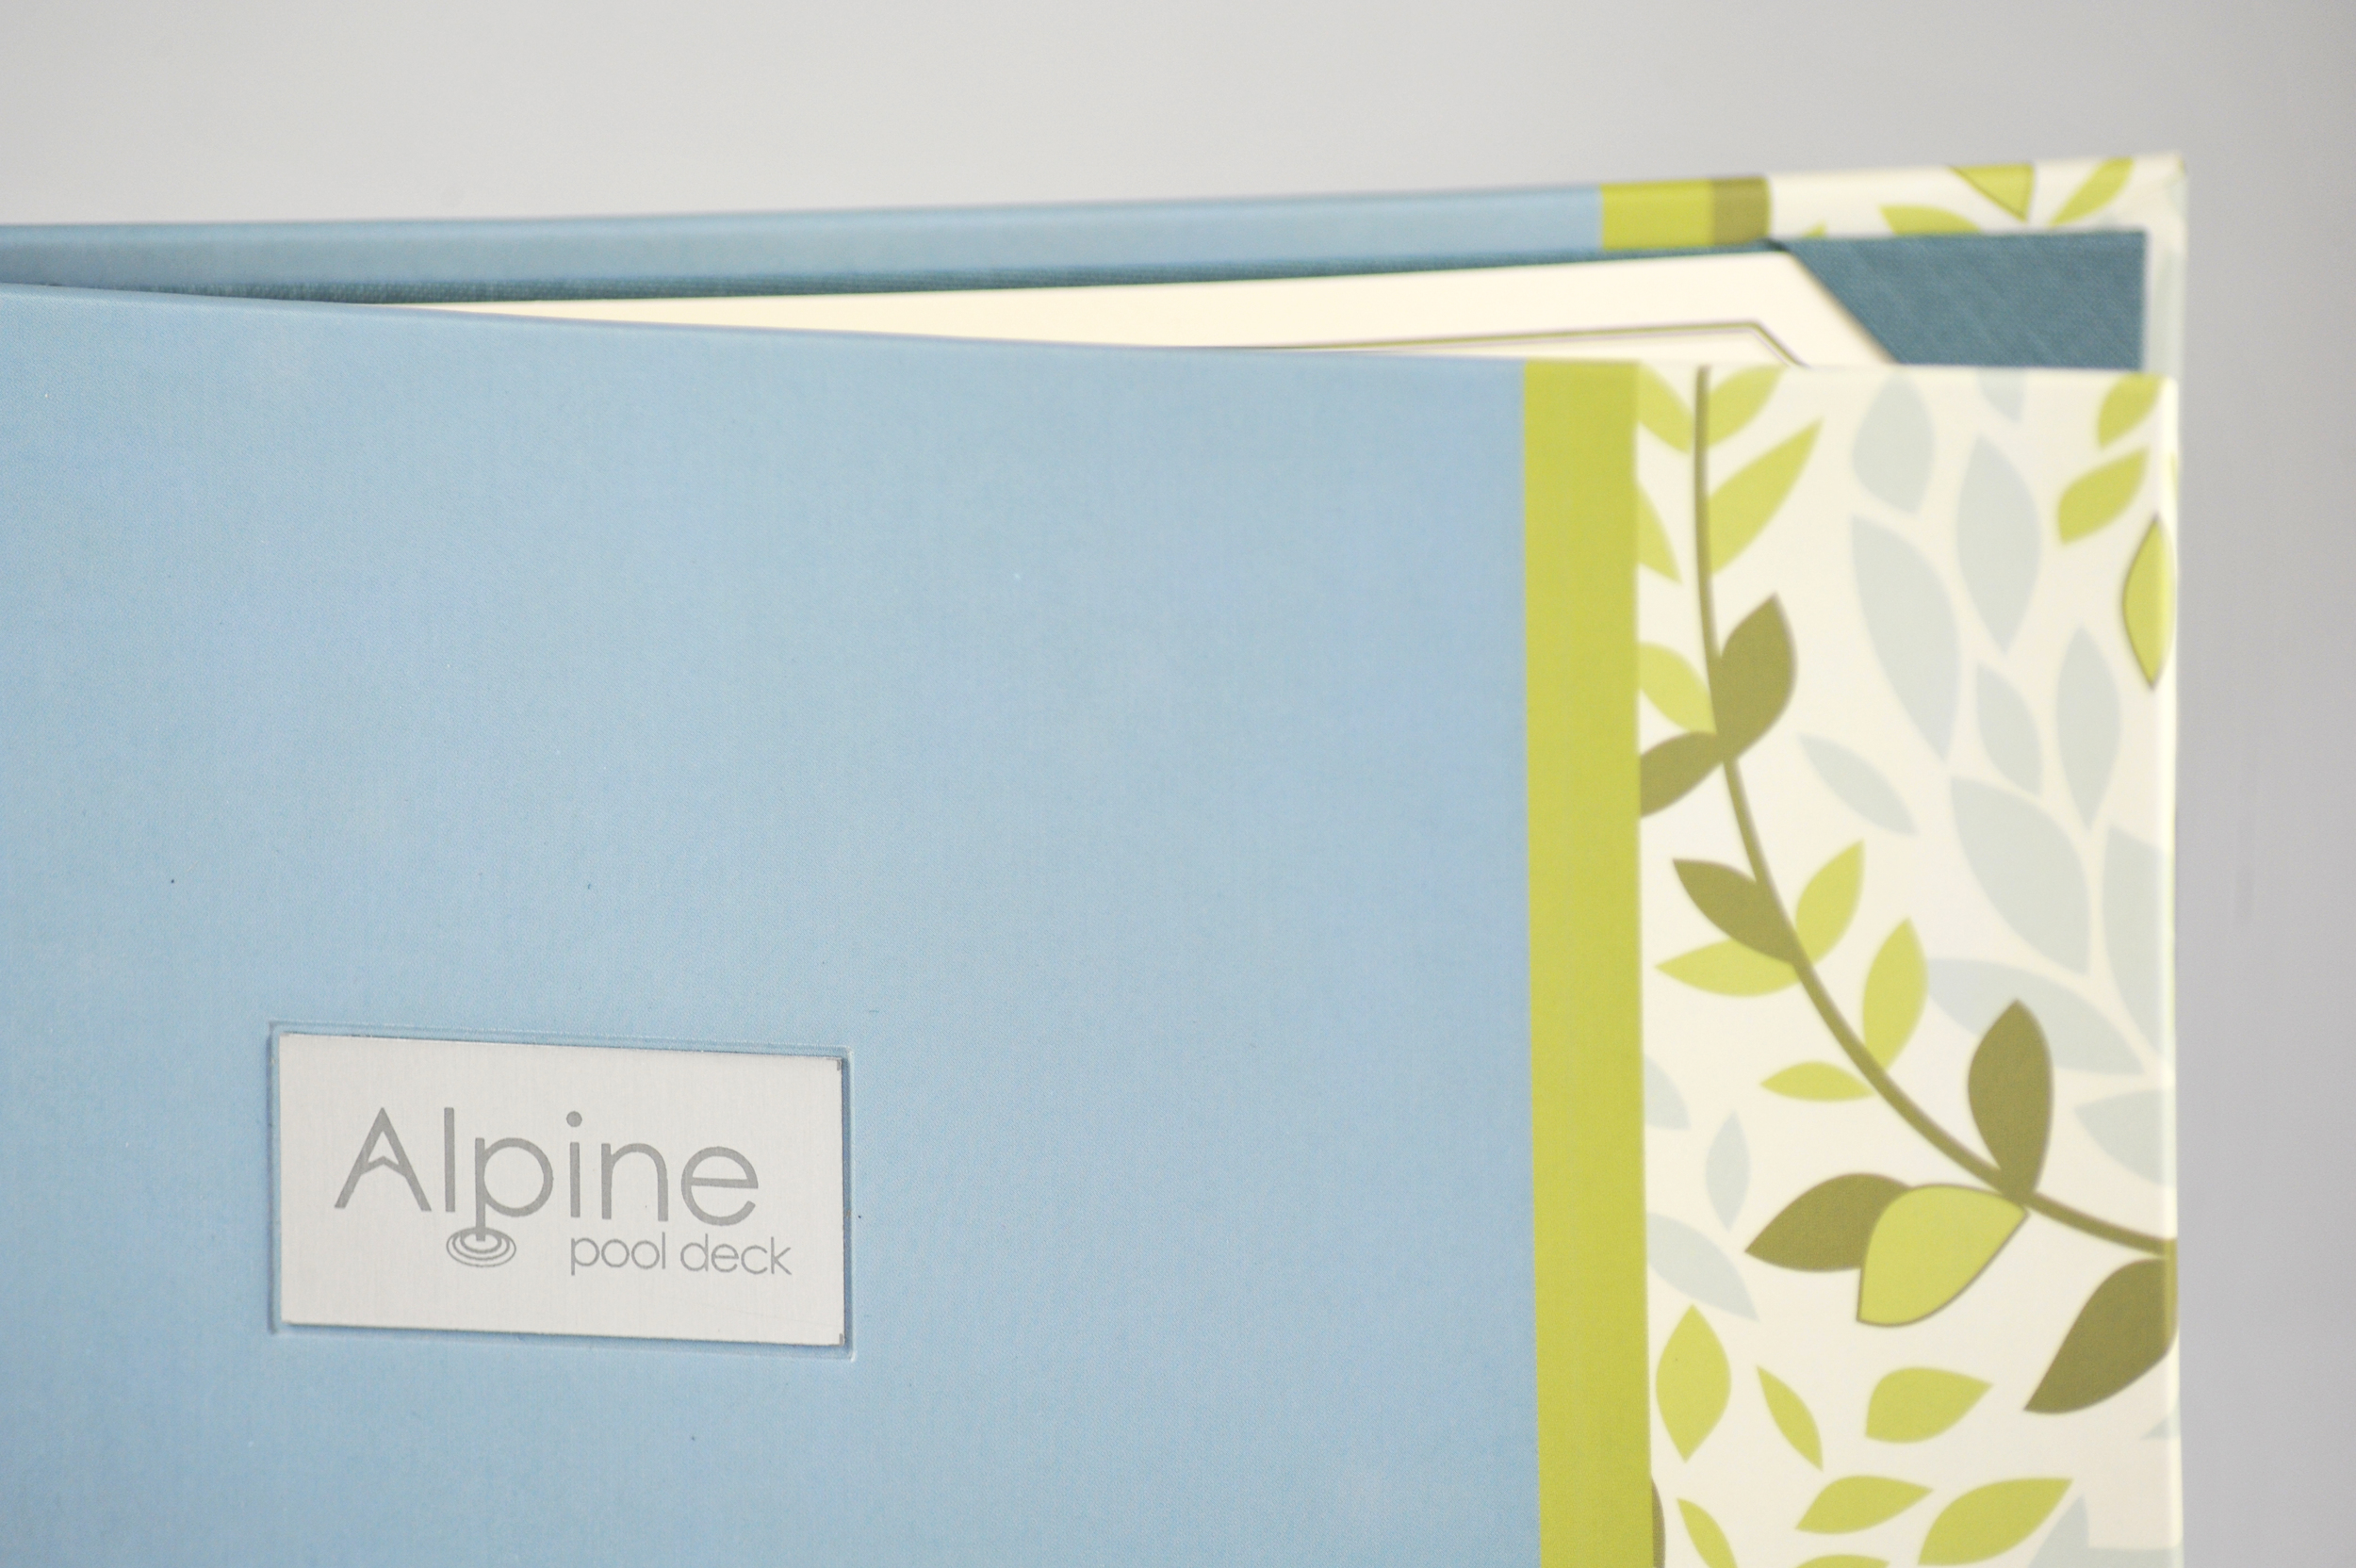 AlpineMenuCustomPatternCover